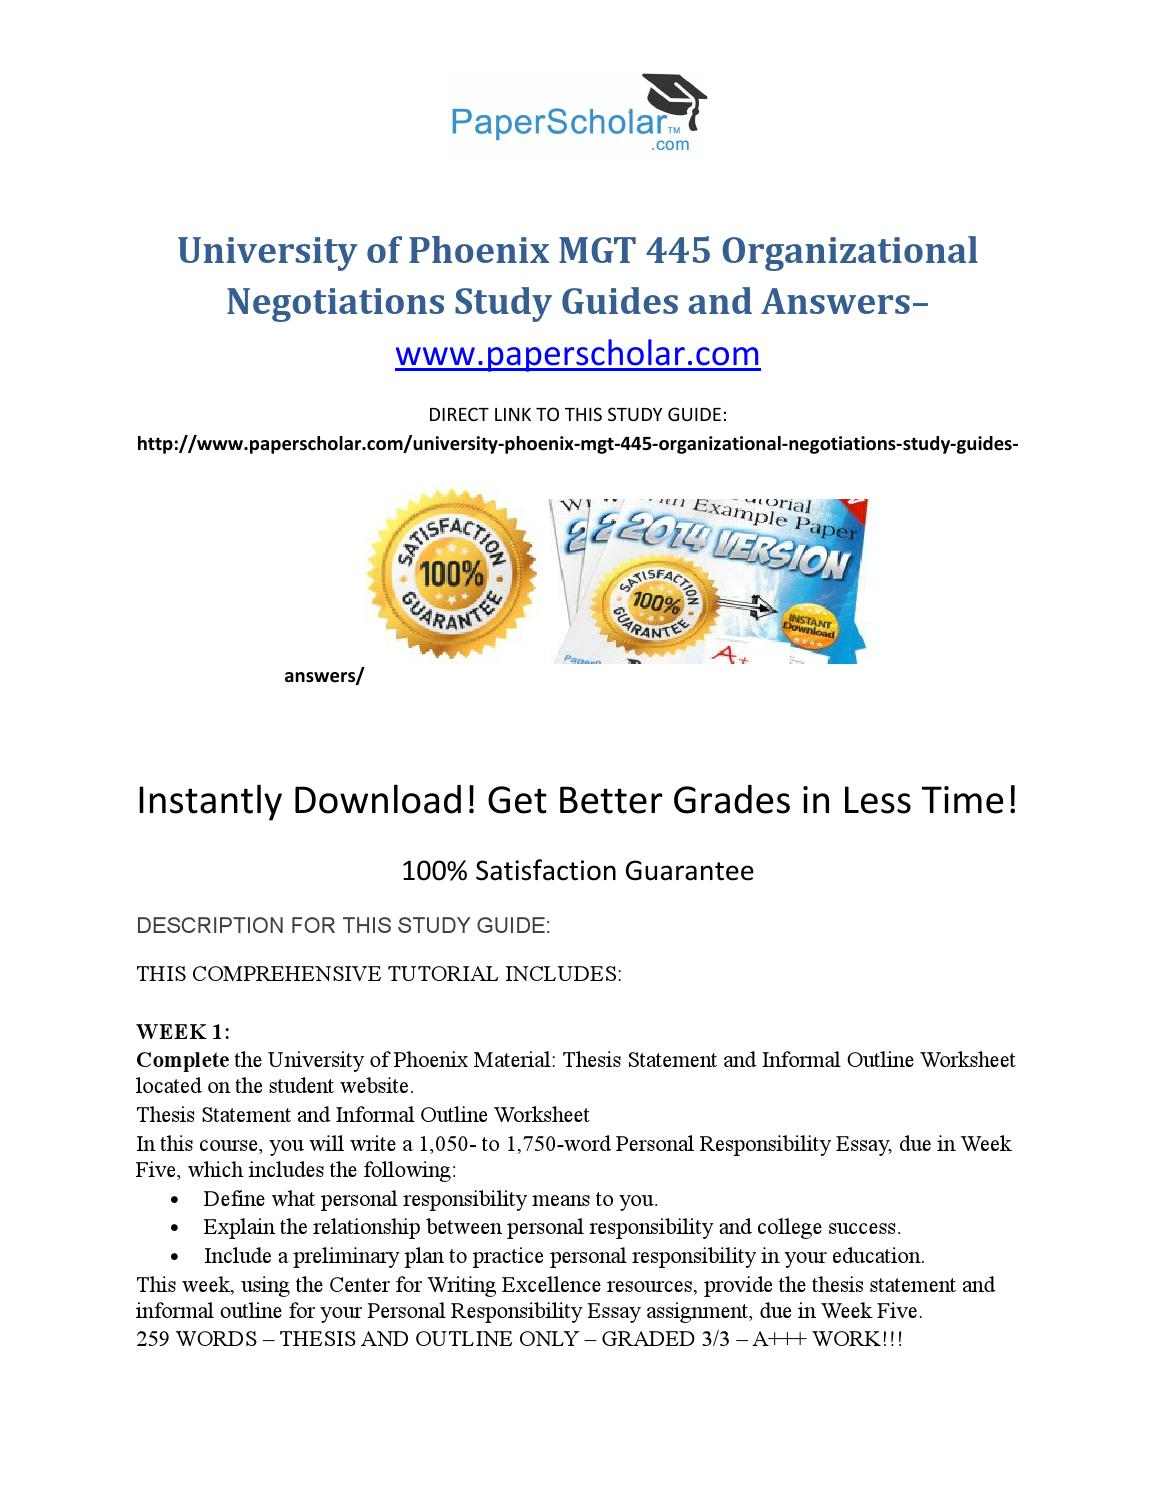 thesis statement and outline university of phoenix Free essays on outline and thesis statement guide healthy eating 156 university of phoenix material outline and thesis statement guide create an outline that.